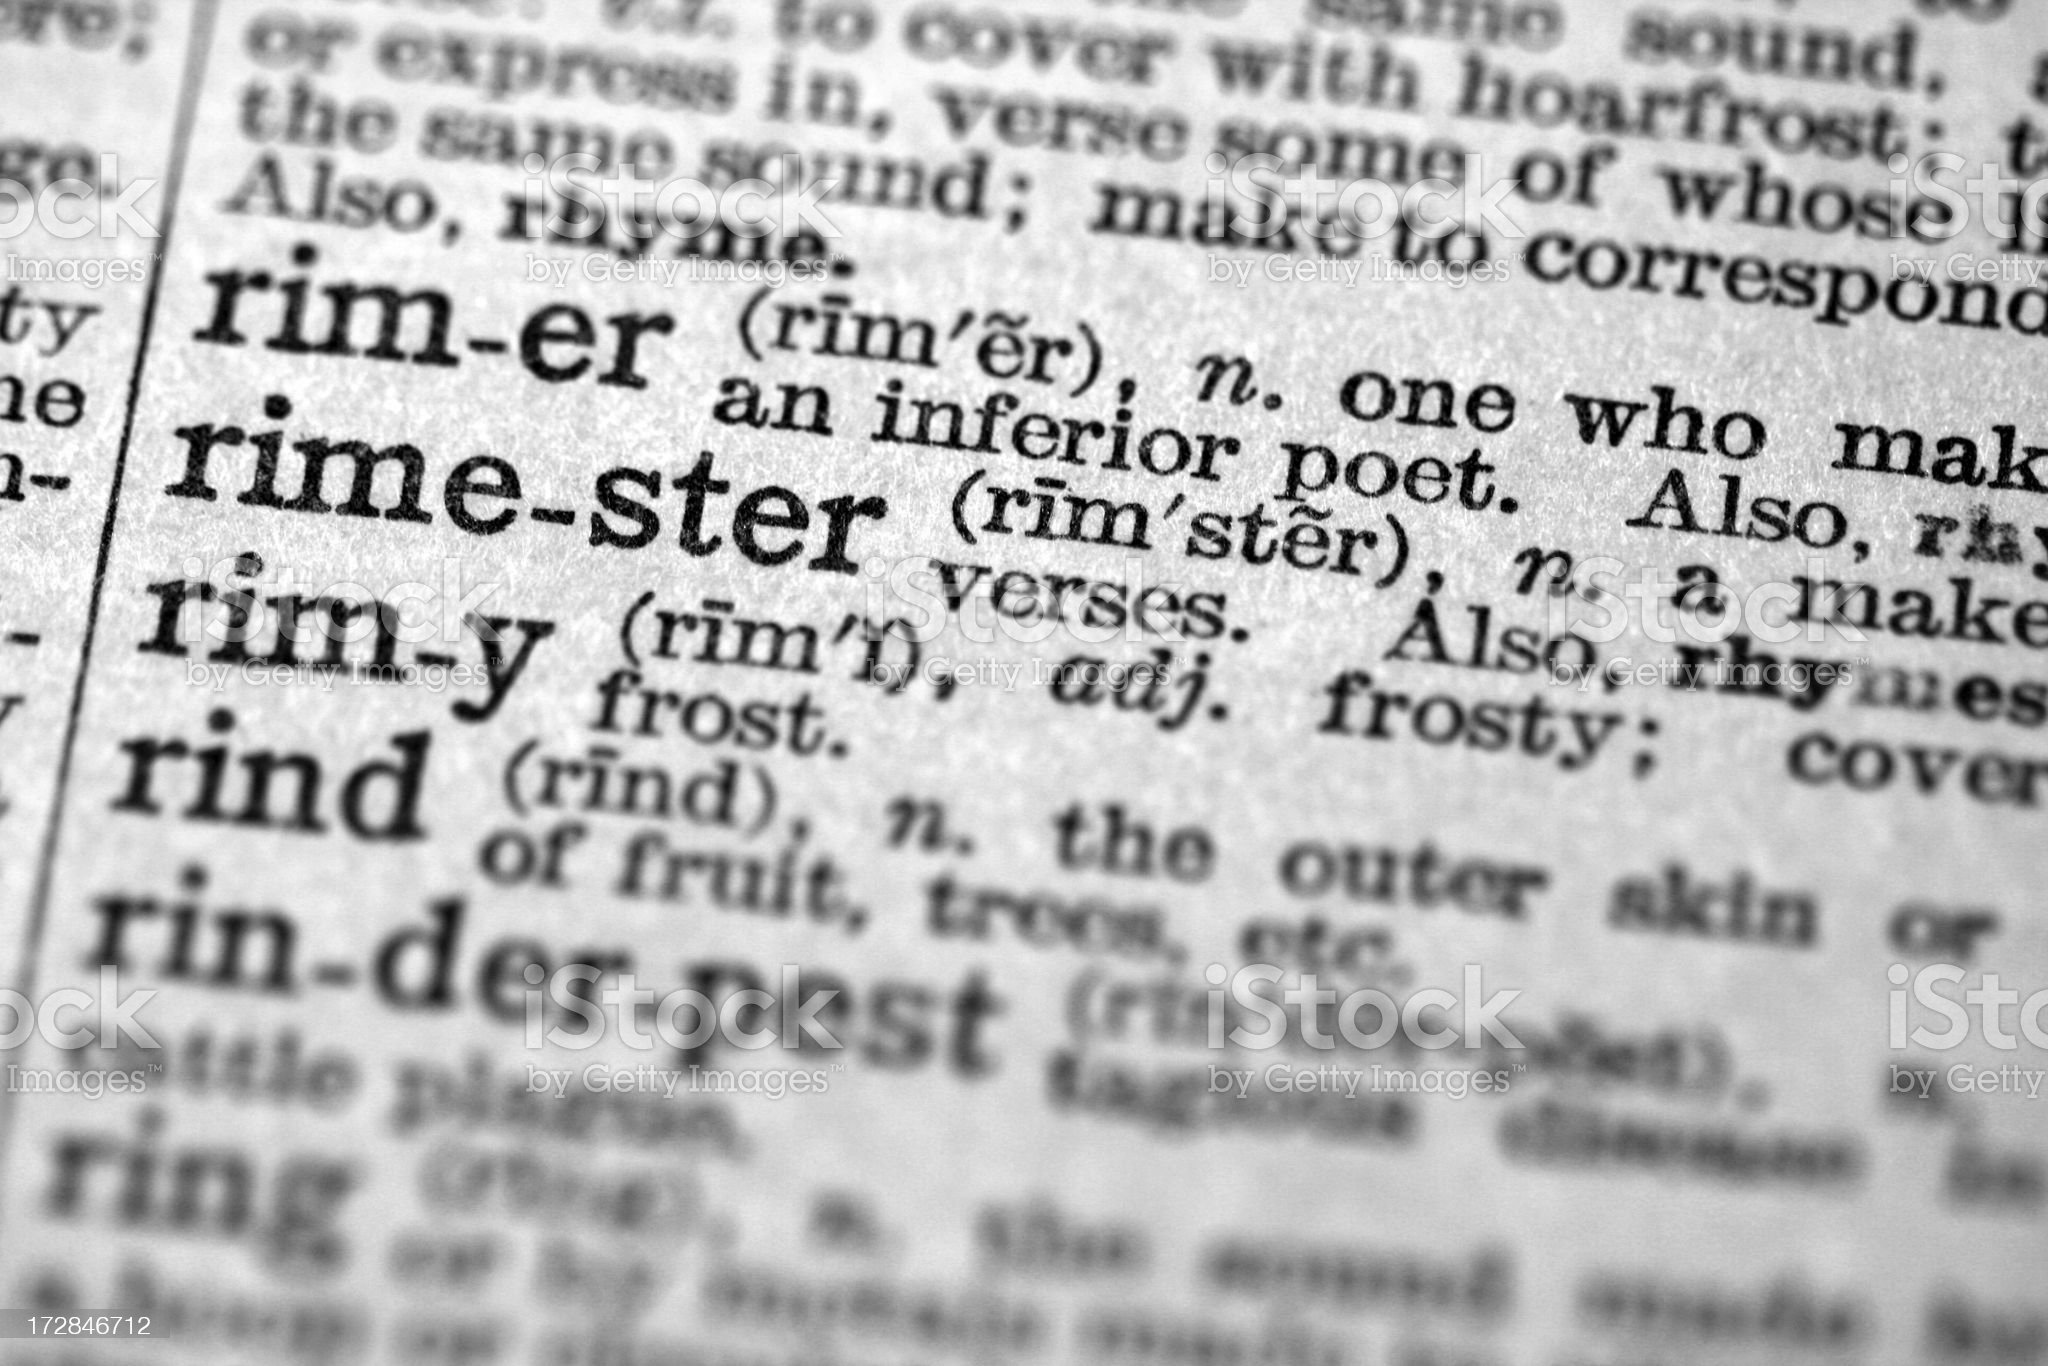 Rimester Unique word dictionary definition royalty-free stock photo